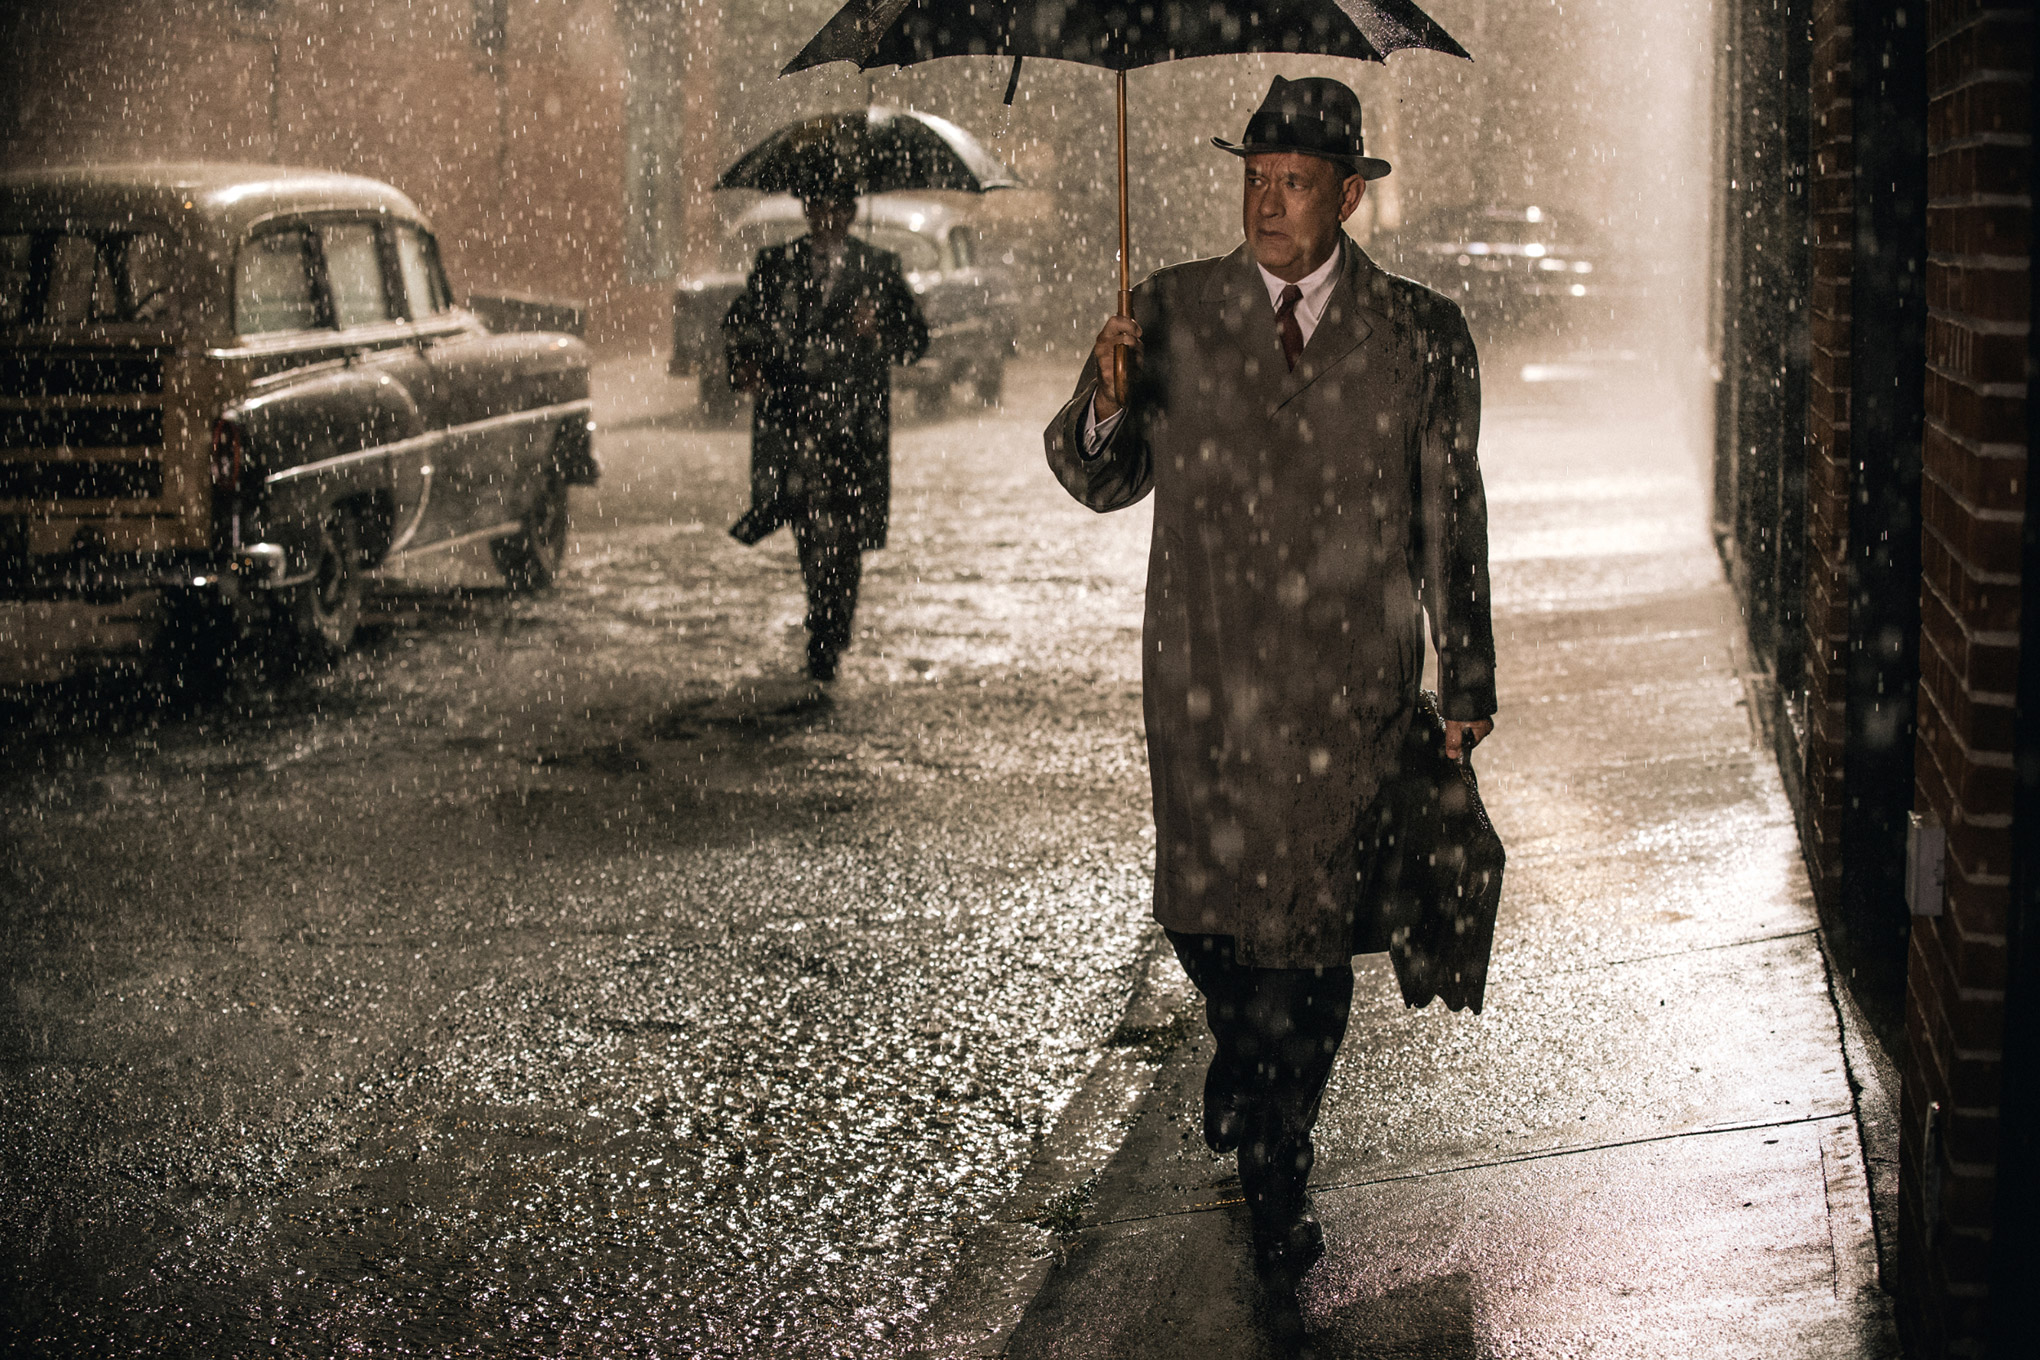 bridge-of-spies-movie.jpg